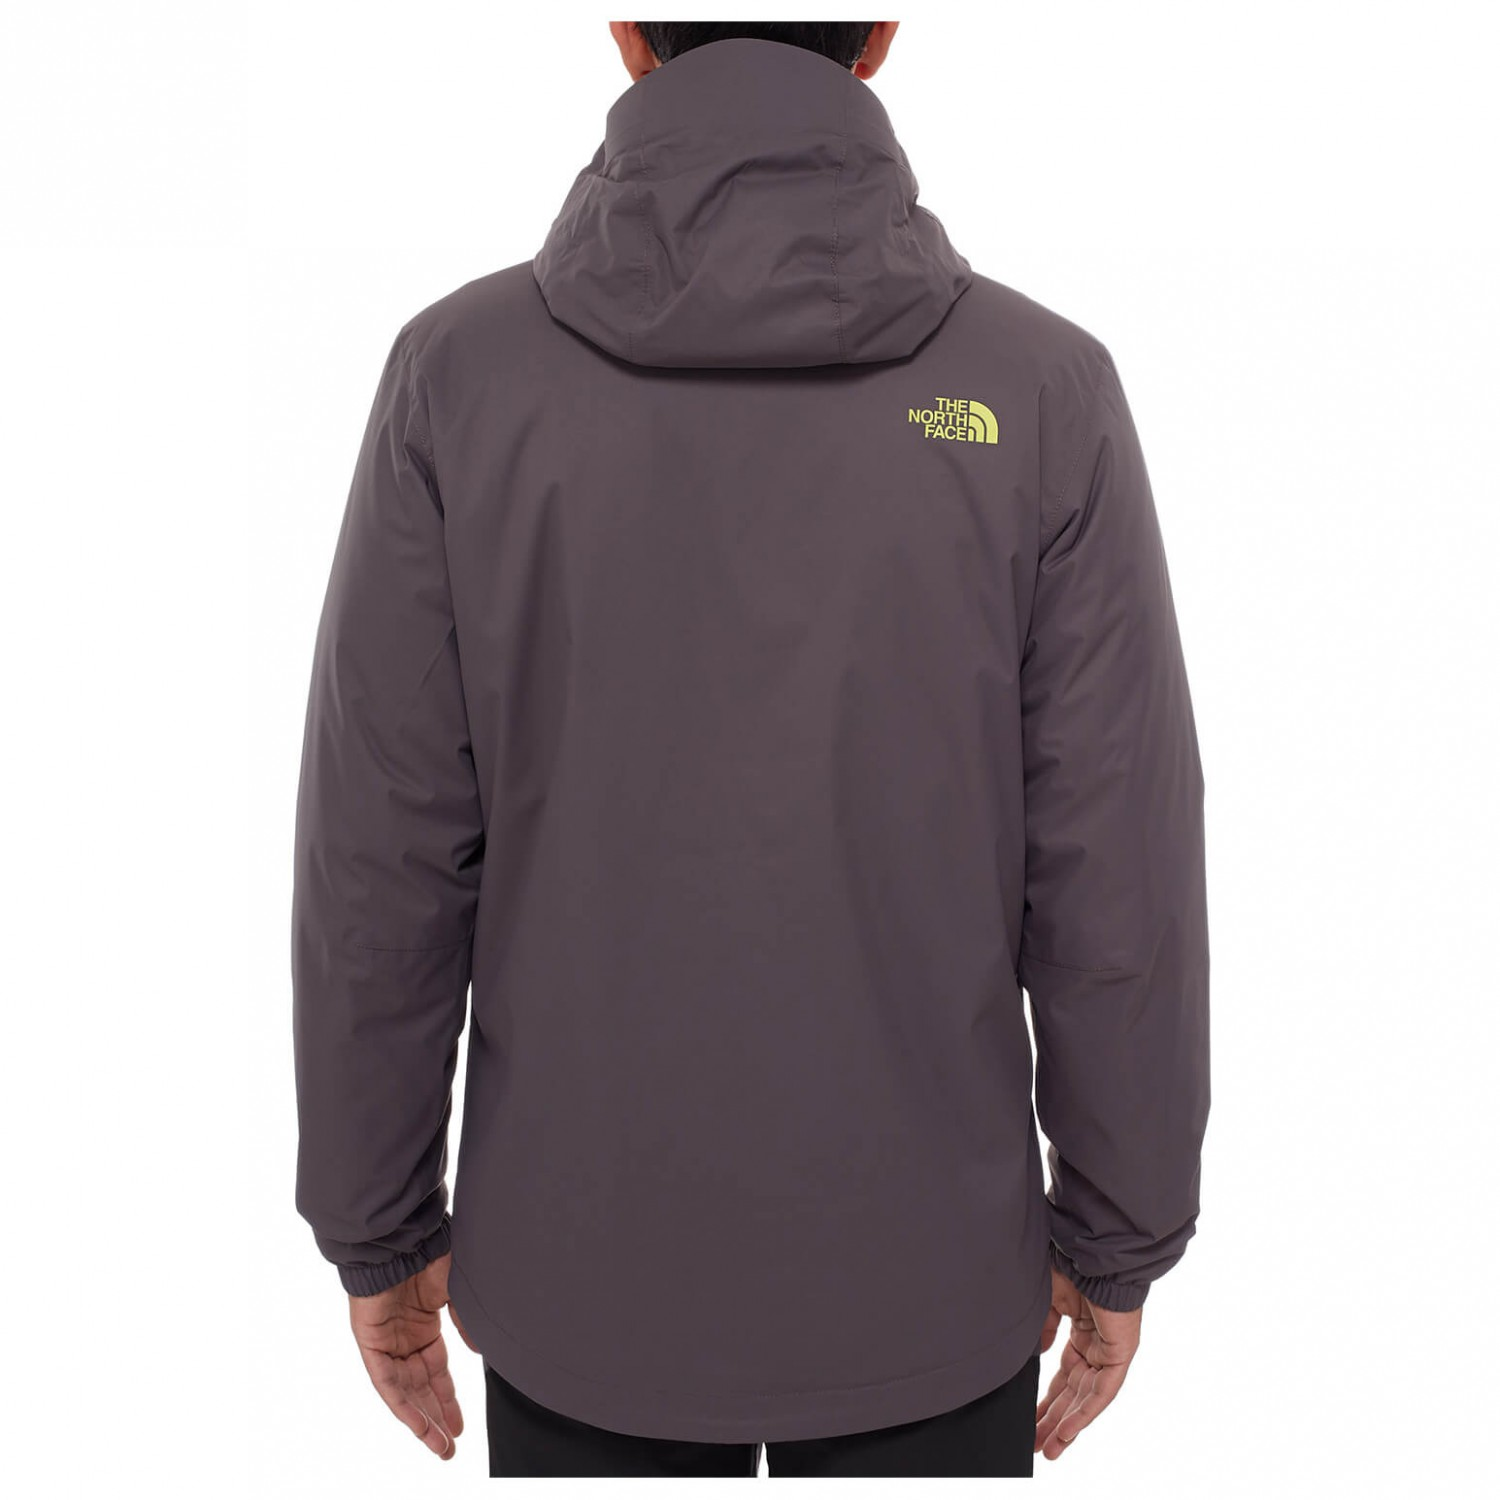 ... The North Face - Quest Insulated Jacket - Winter jacket ... 2d0437d5bf8d